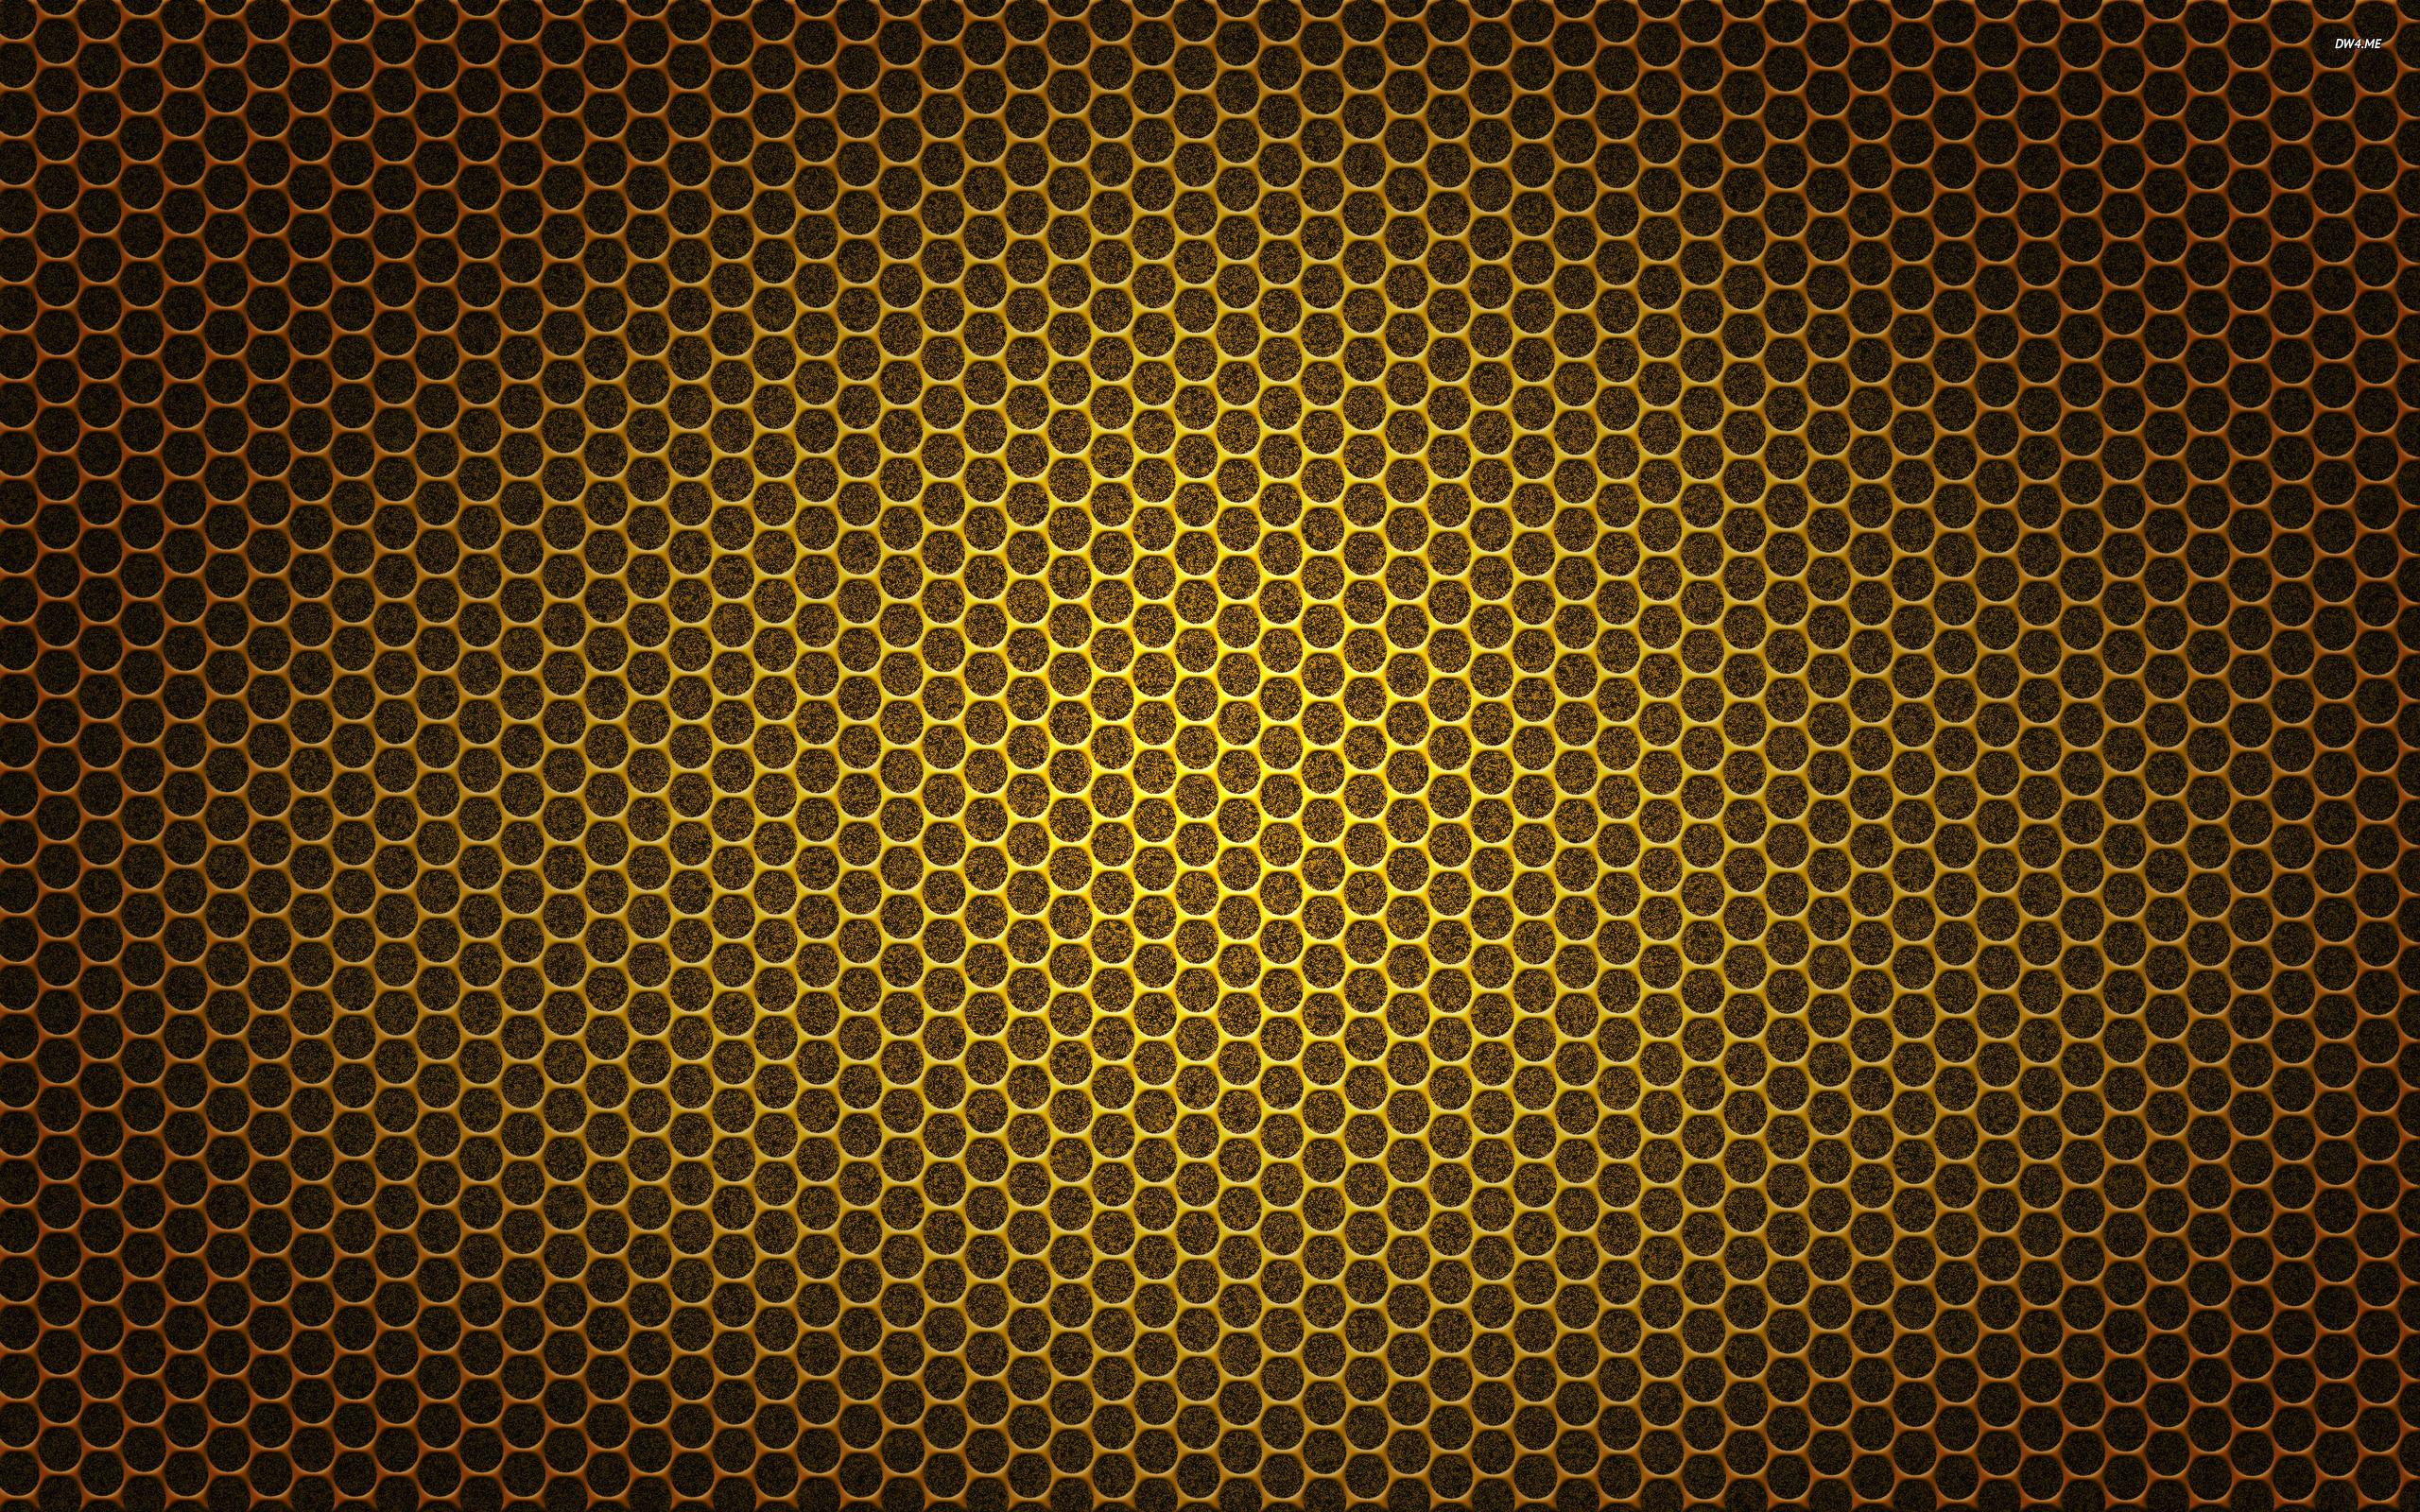 Gold 4k Wallpapers Top Free Gold 4k Backgrounds Wallpaperaccess